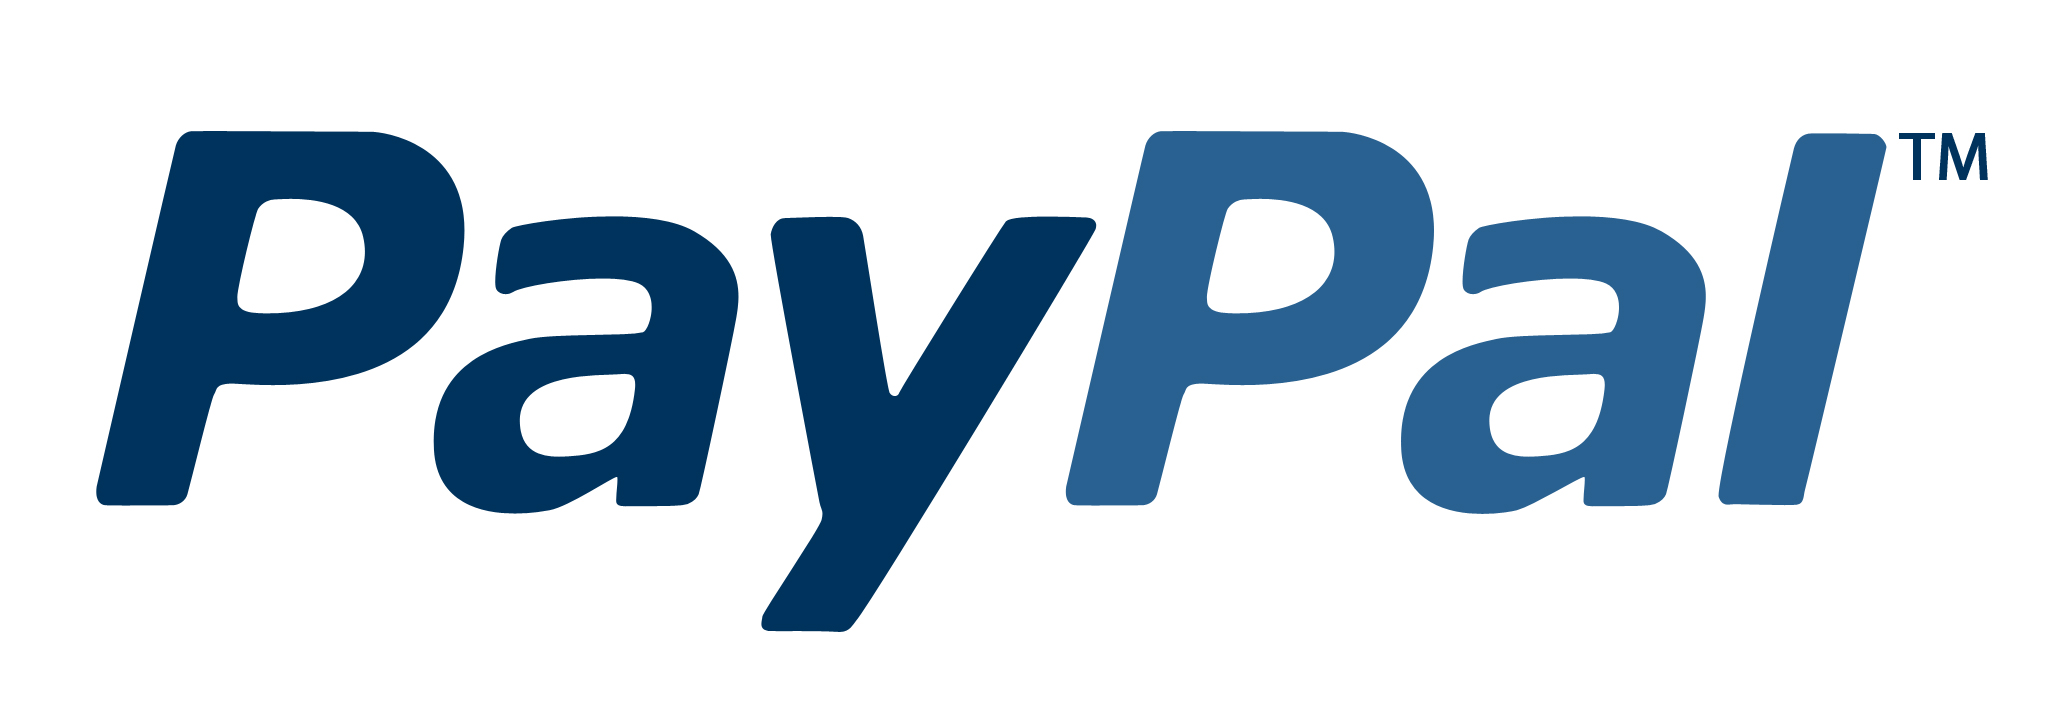 Paypalは未成年の登録ができないらしい。年齢認証は?